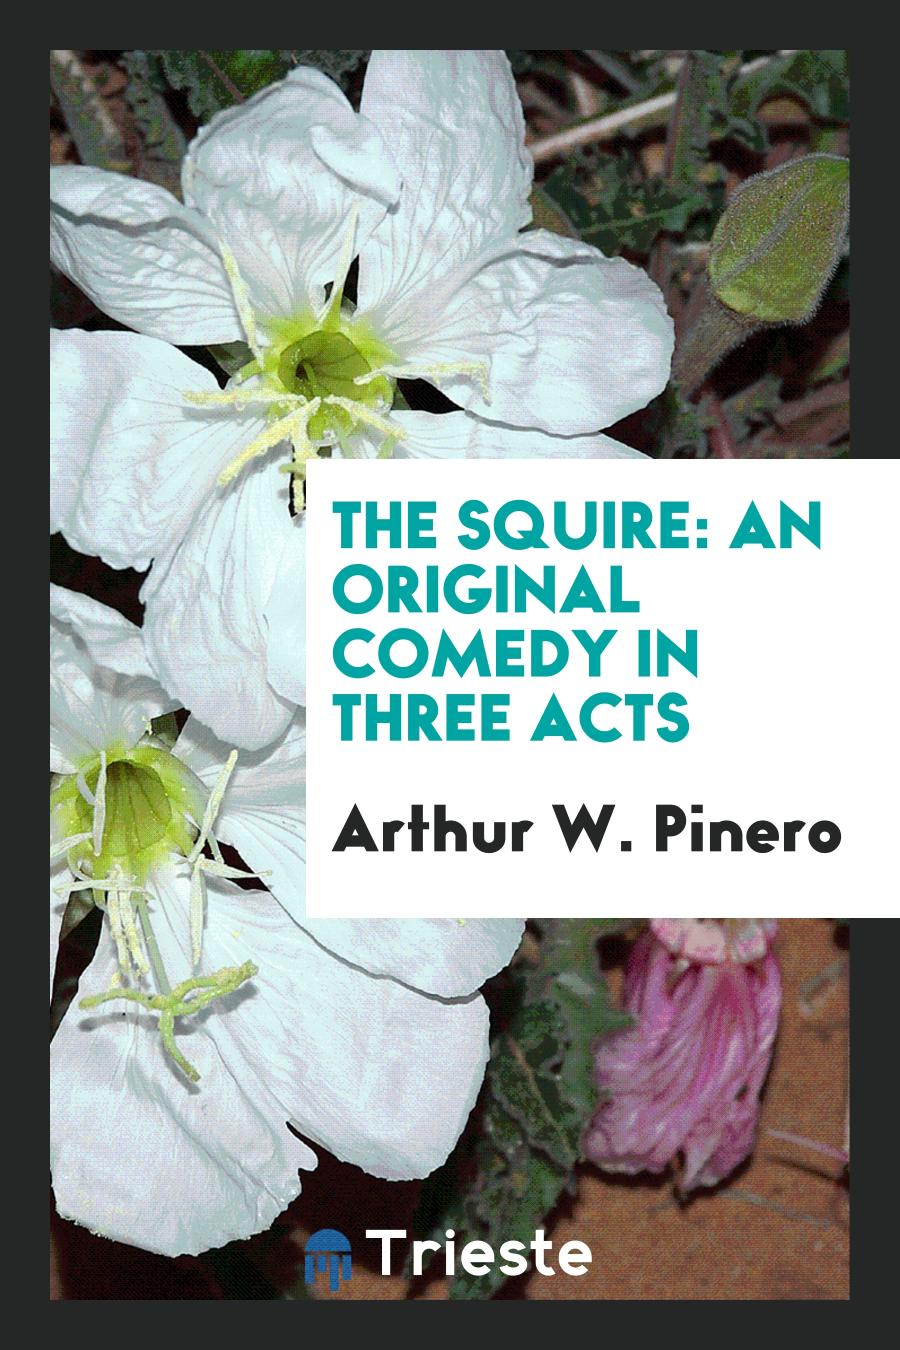 The Squire: An Original Comedy in Three Acts